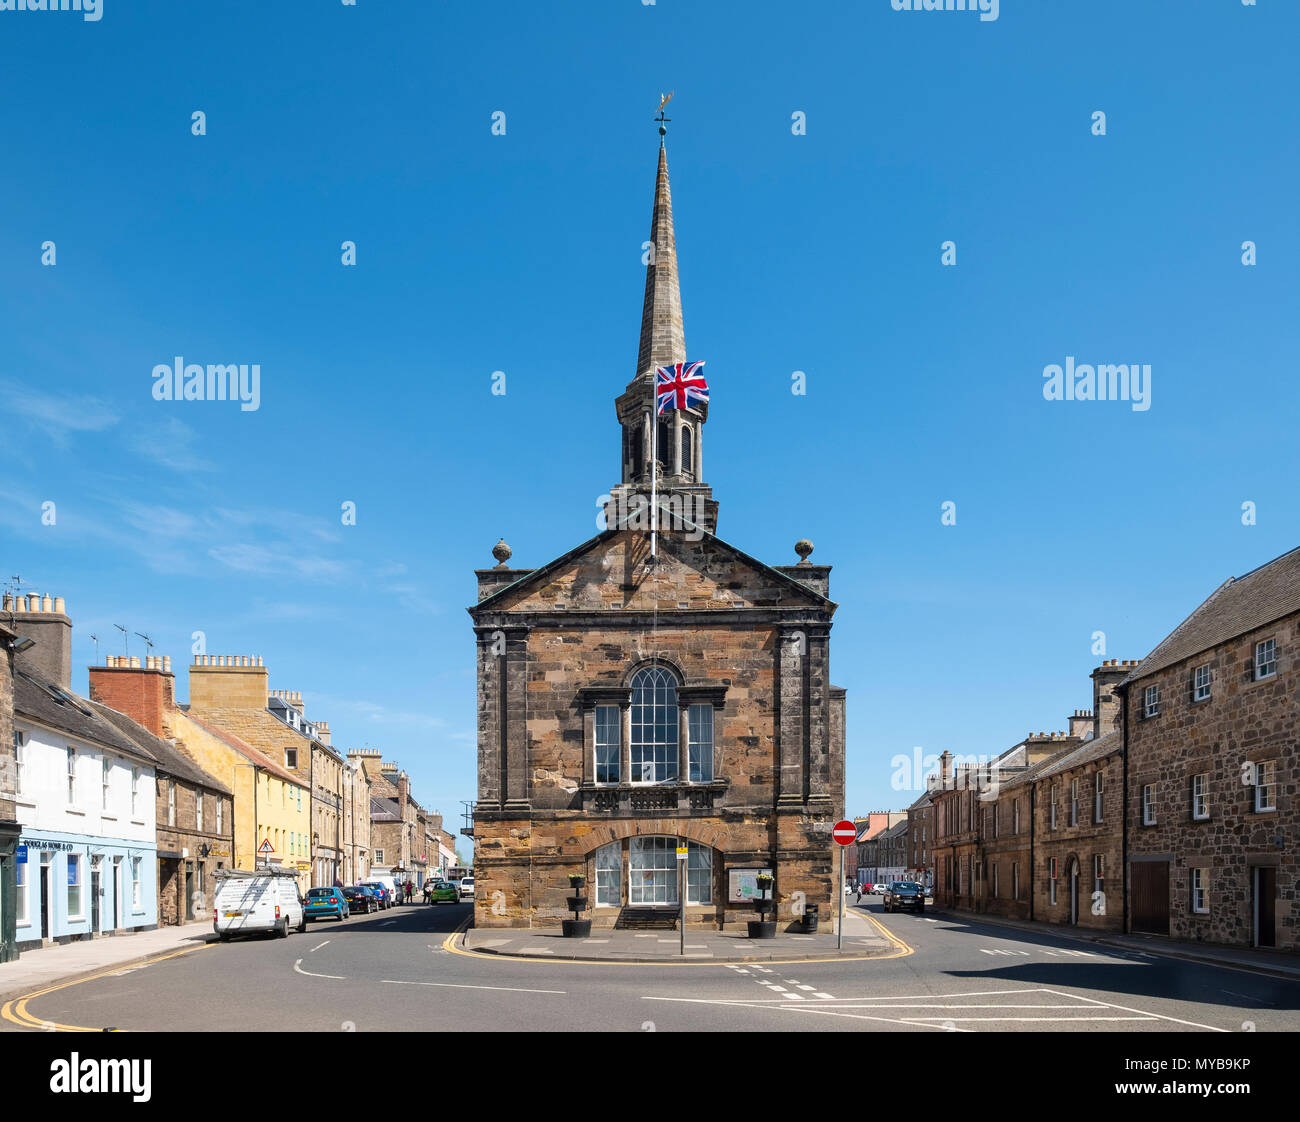 The Town House in Haddington , East Lothian, Scotland, UK - Stock Image